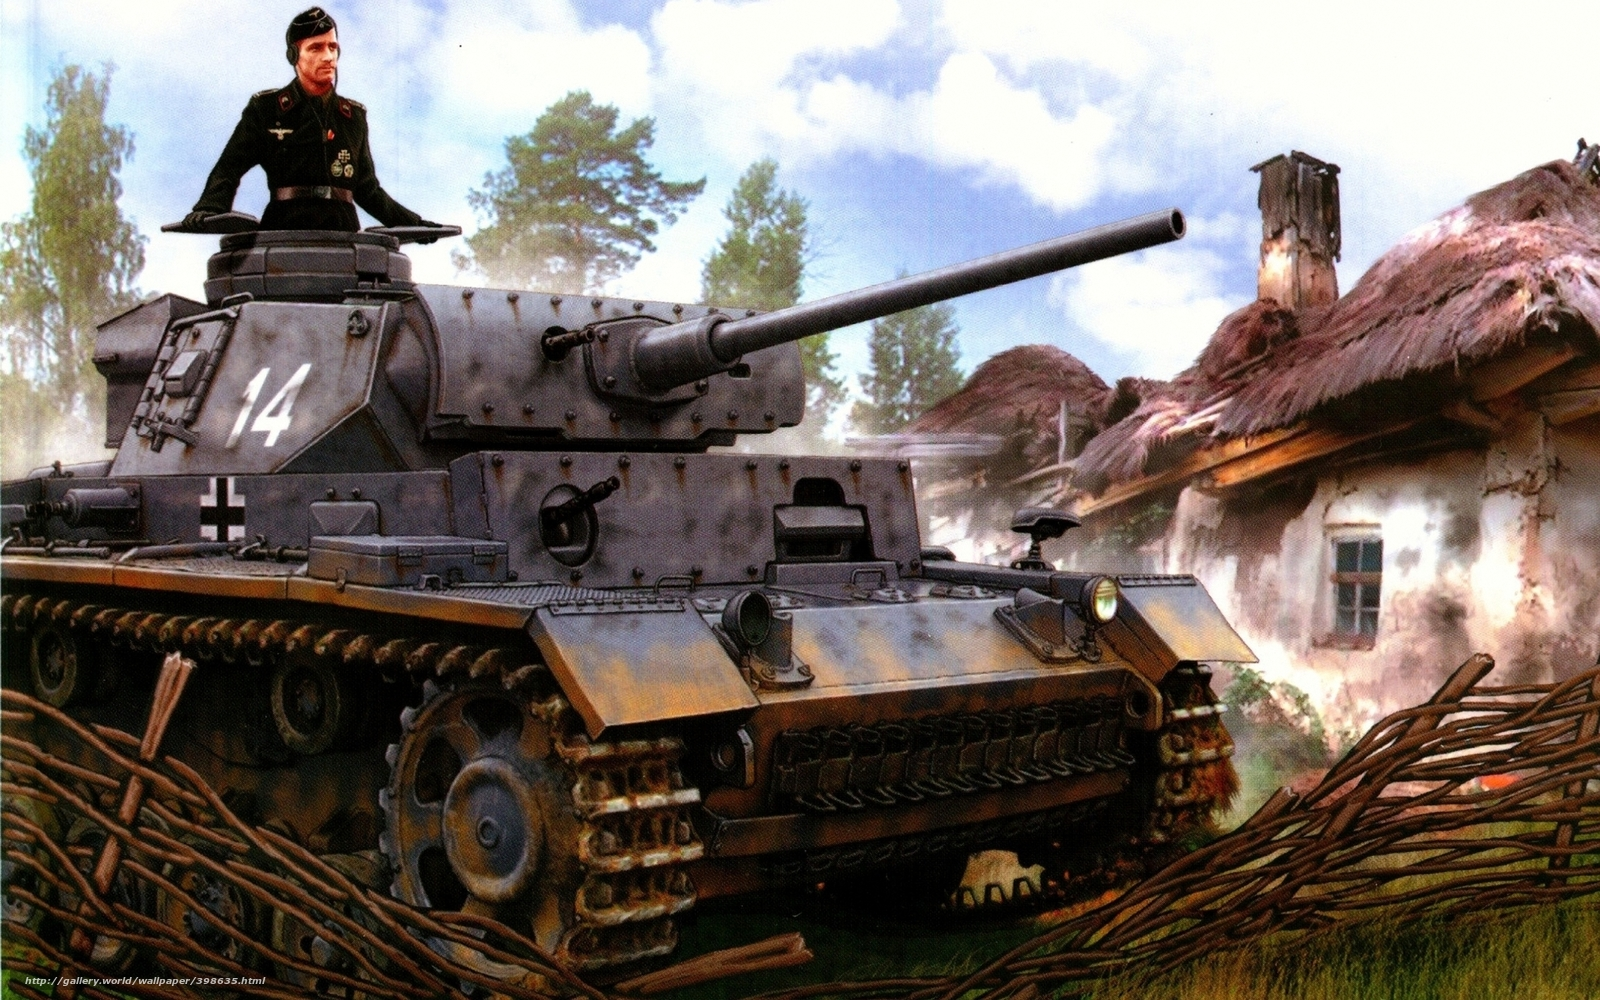 download wallpaper panzer iii ww2 military art free